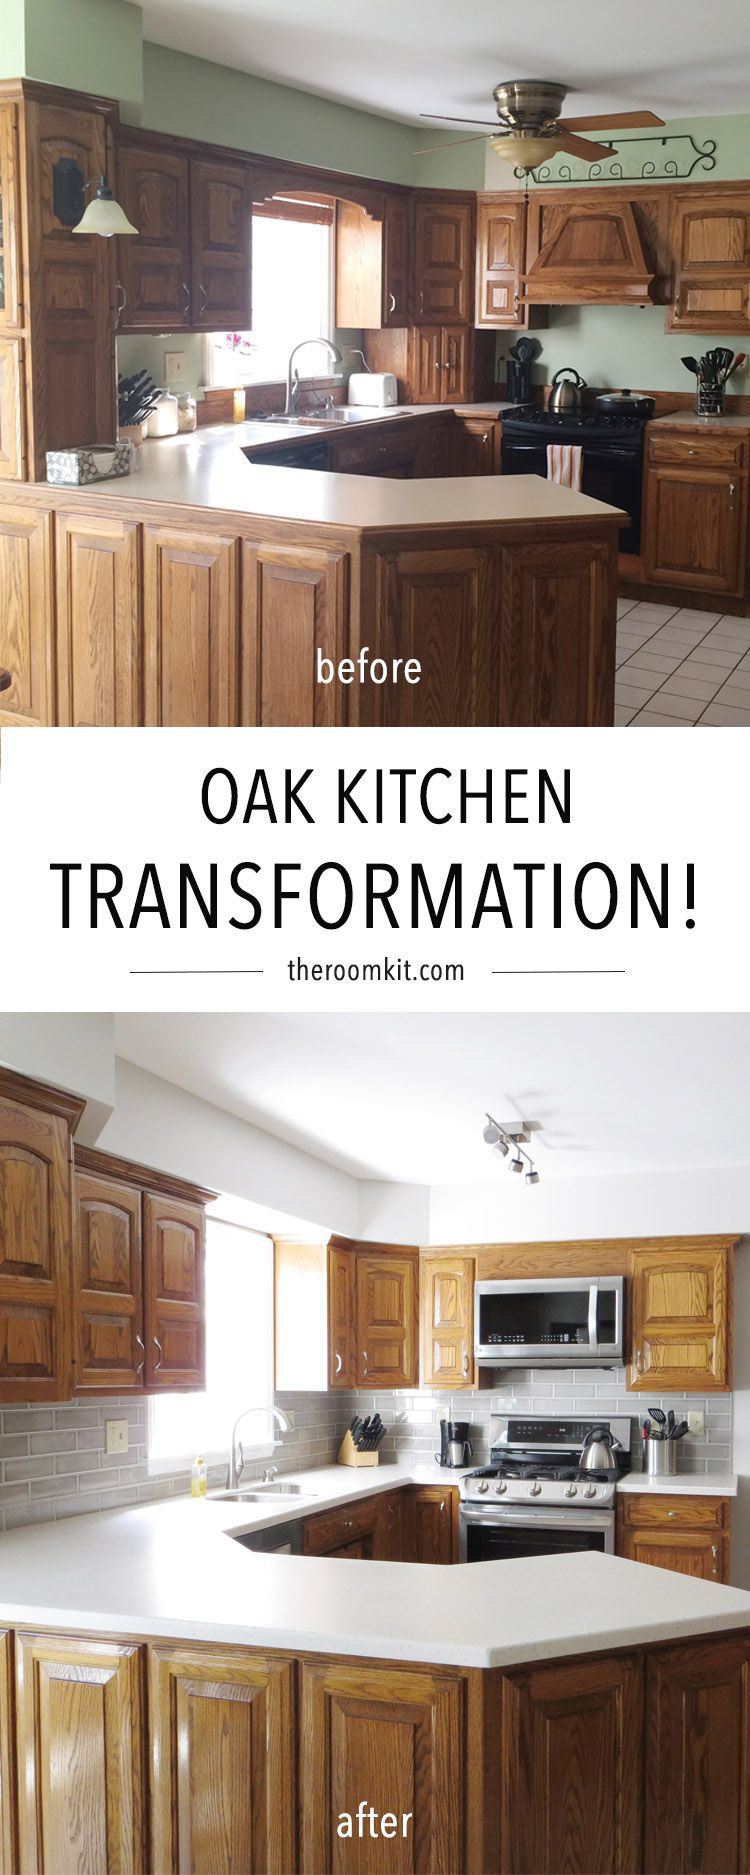 You Can Totally Keep Your Oak Cabinets And Make Them Work How To Reuse Oak Cabinets In A Kitchen Kitchen Transformation Oak Kitchen Kitchen Inspirations